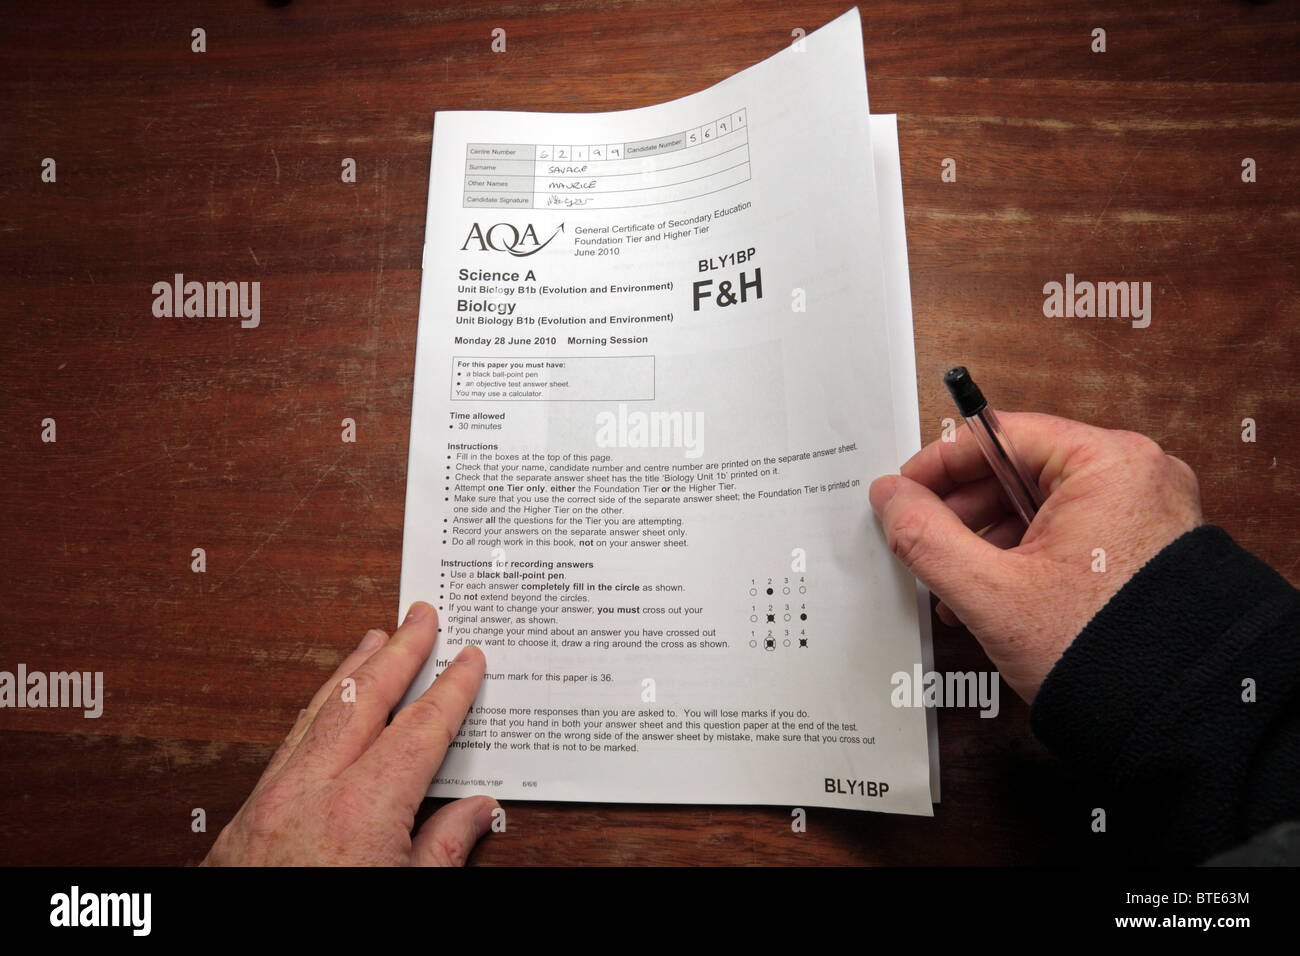 Aqa Examination Board Stock Photos Aqa Examination Board Stock